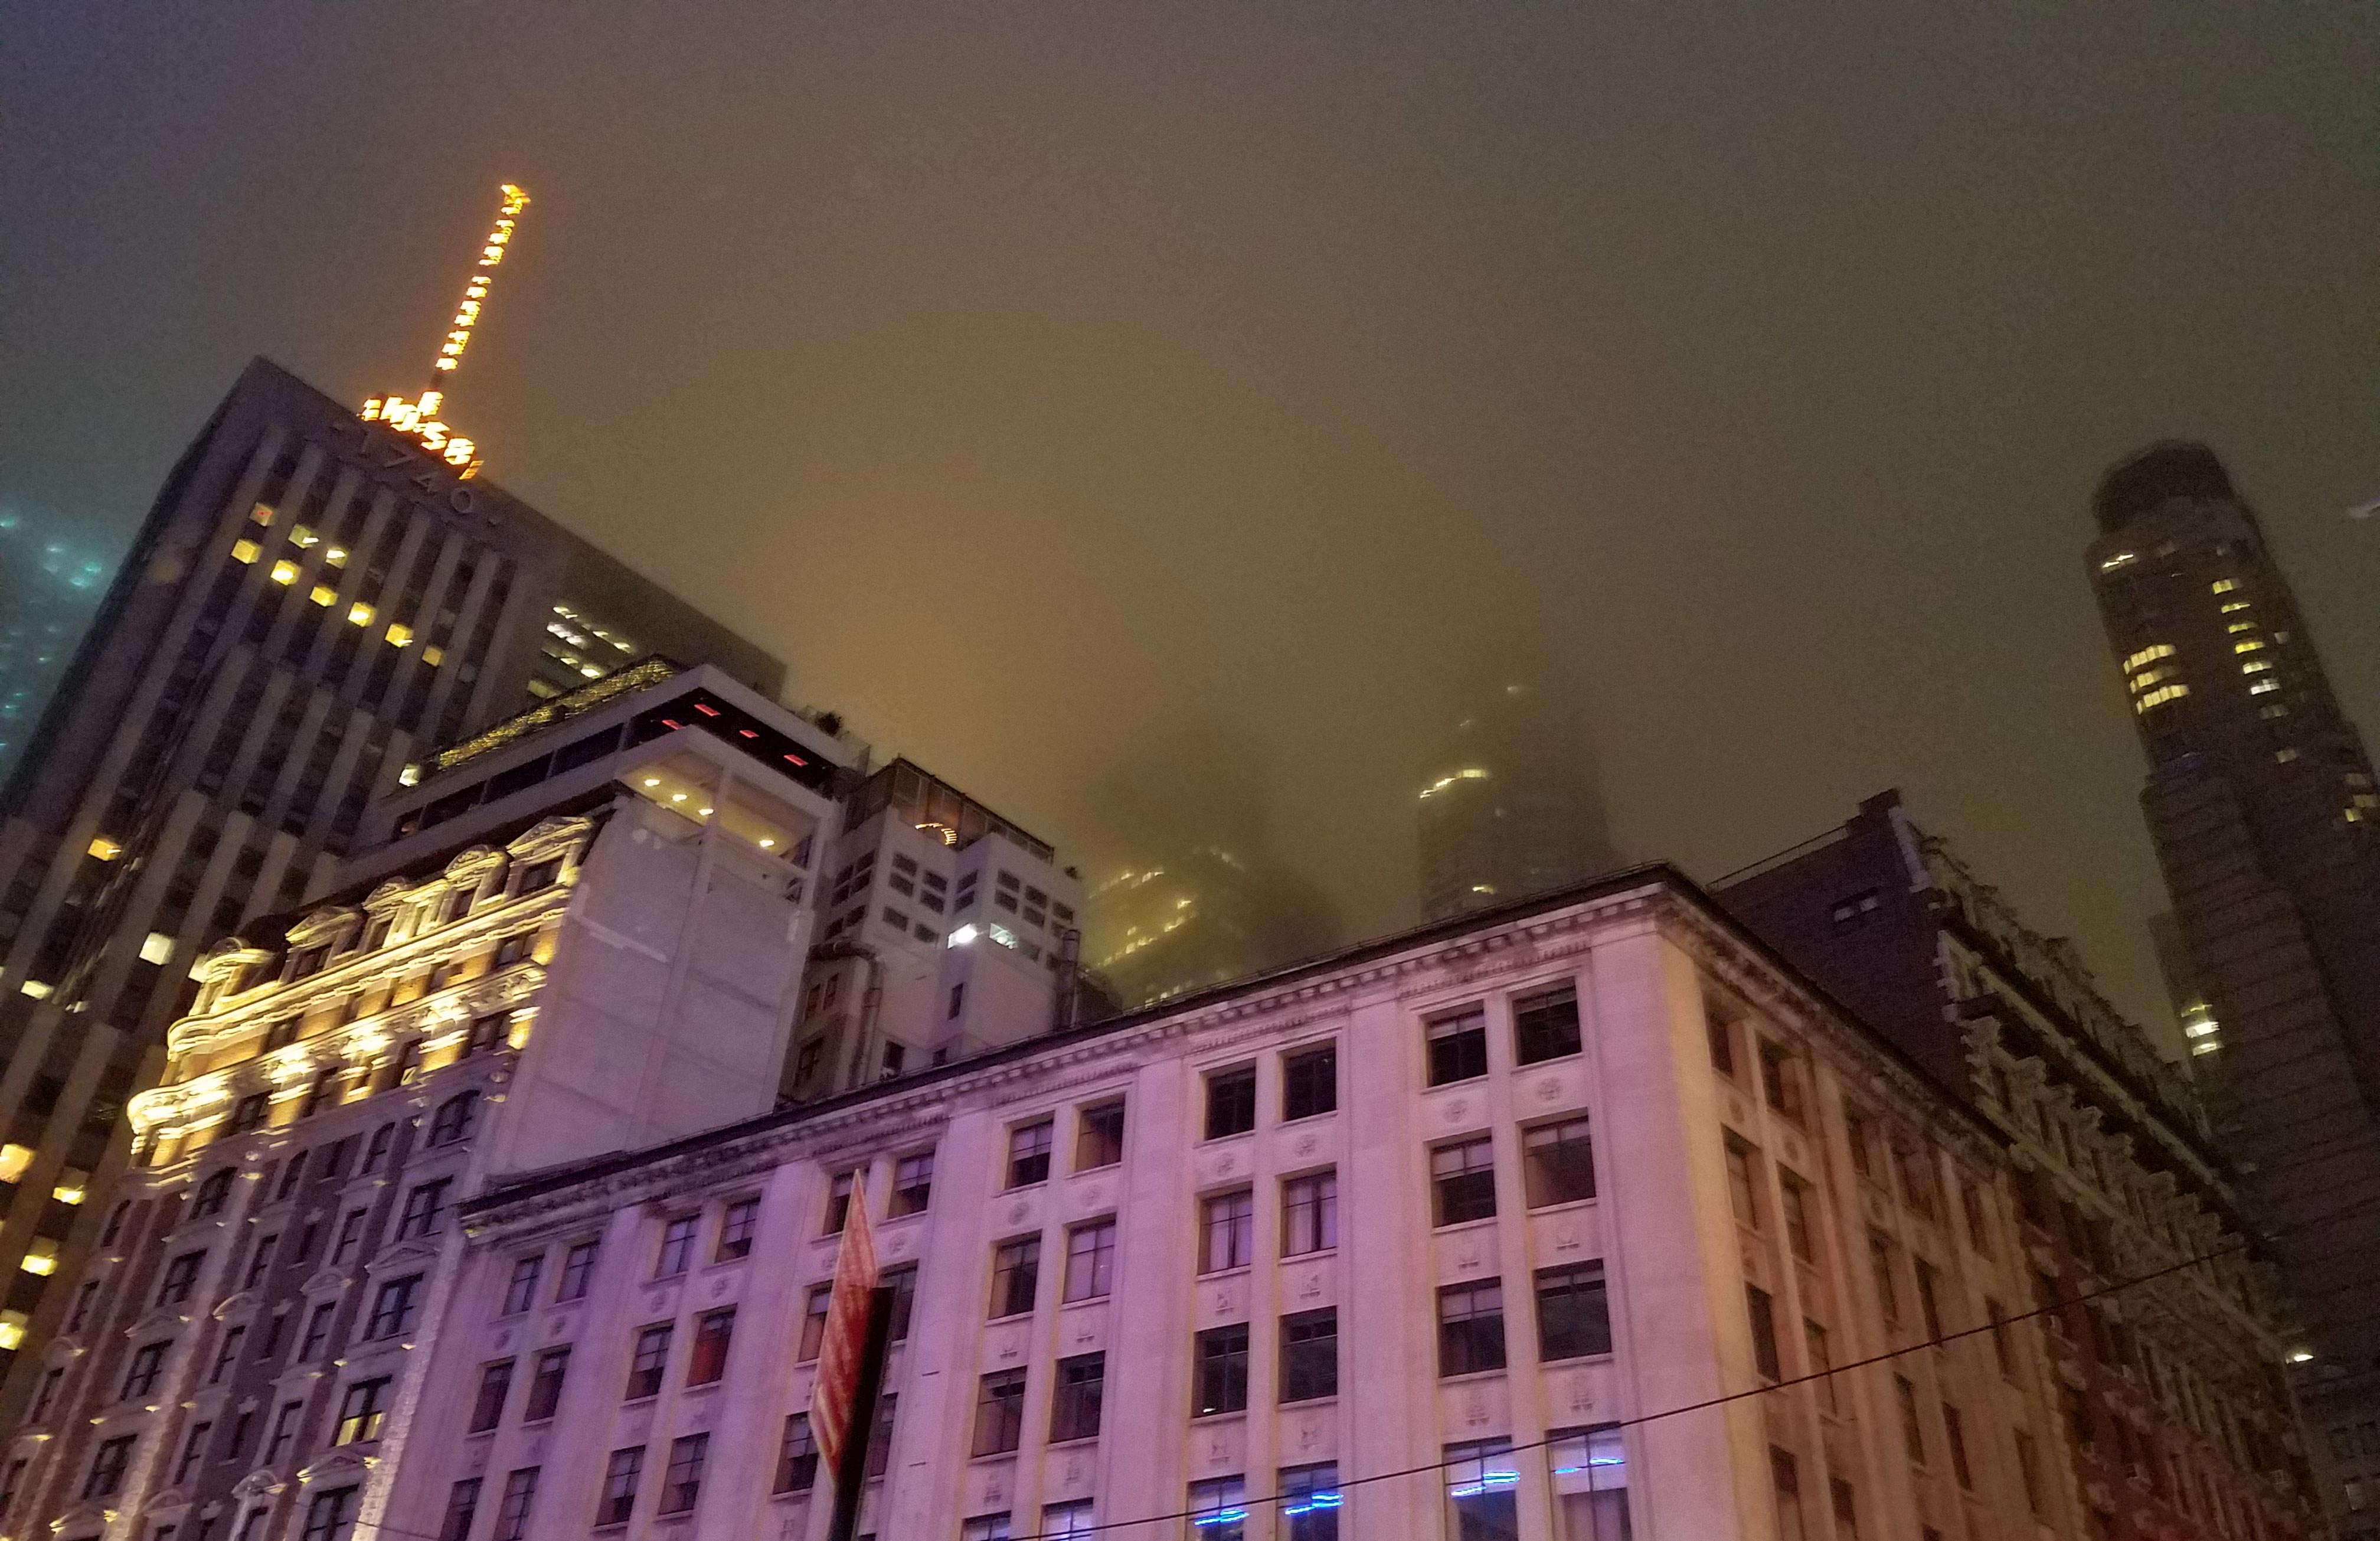 A nighttime picture looking up at a skyline being dissolved by dense fog.